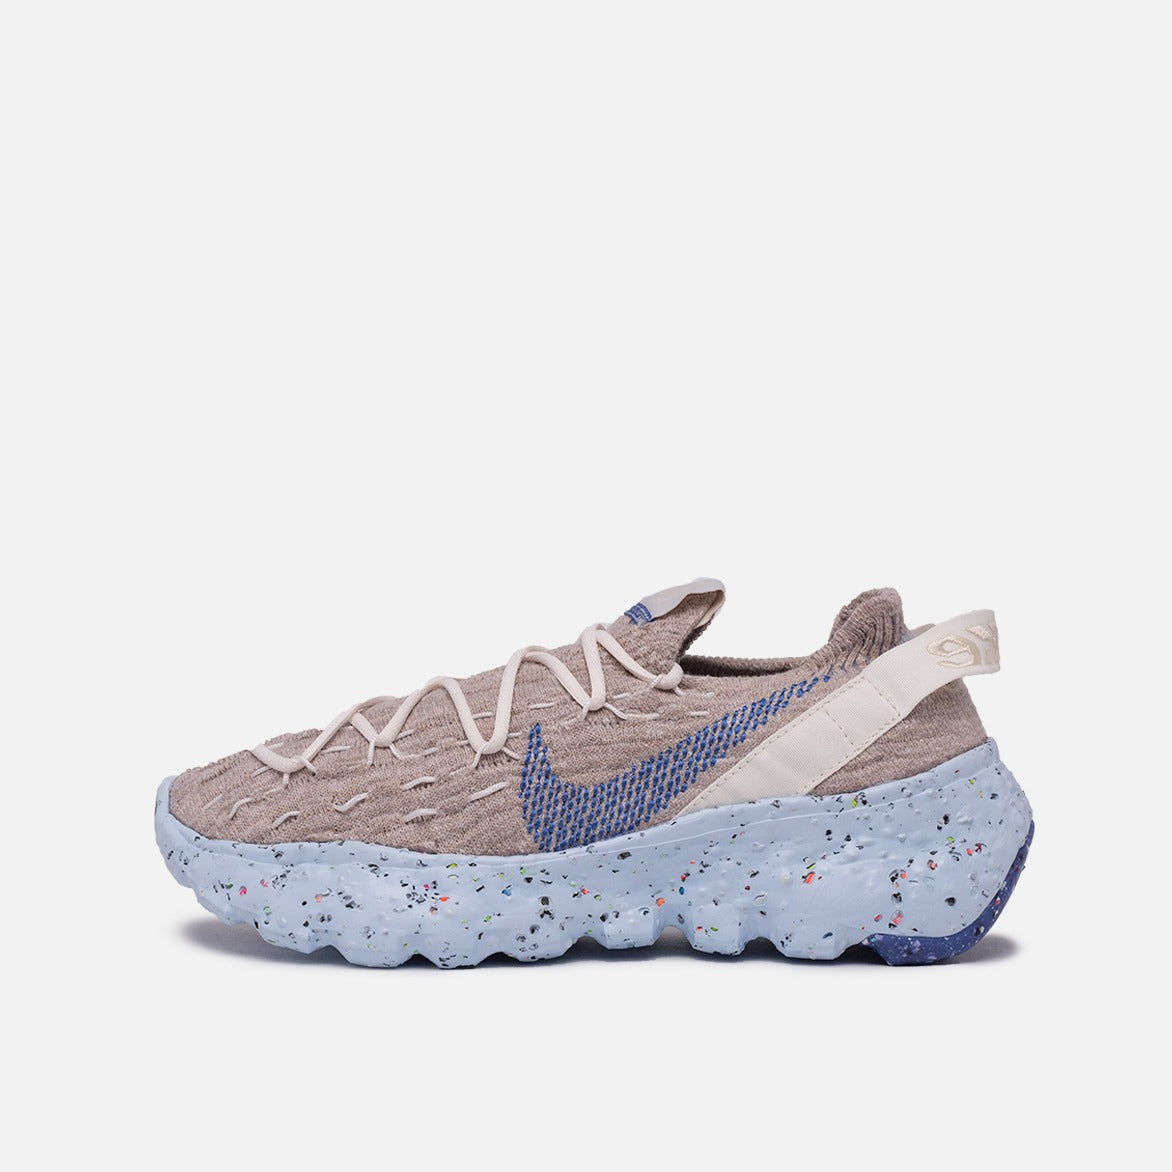 "WMNS SPACE HIPPIE 04 ""ASTRONOMY BLUE"""